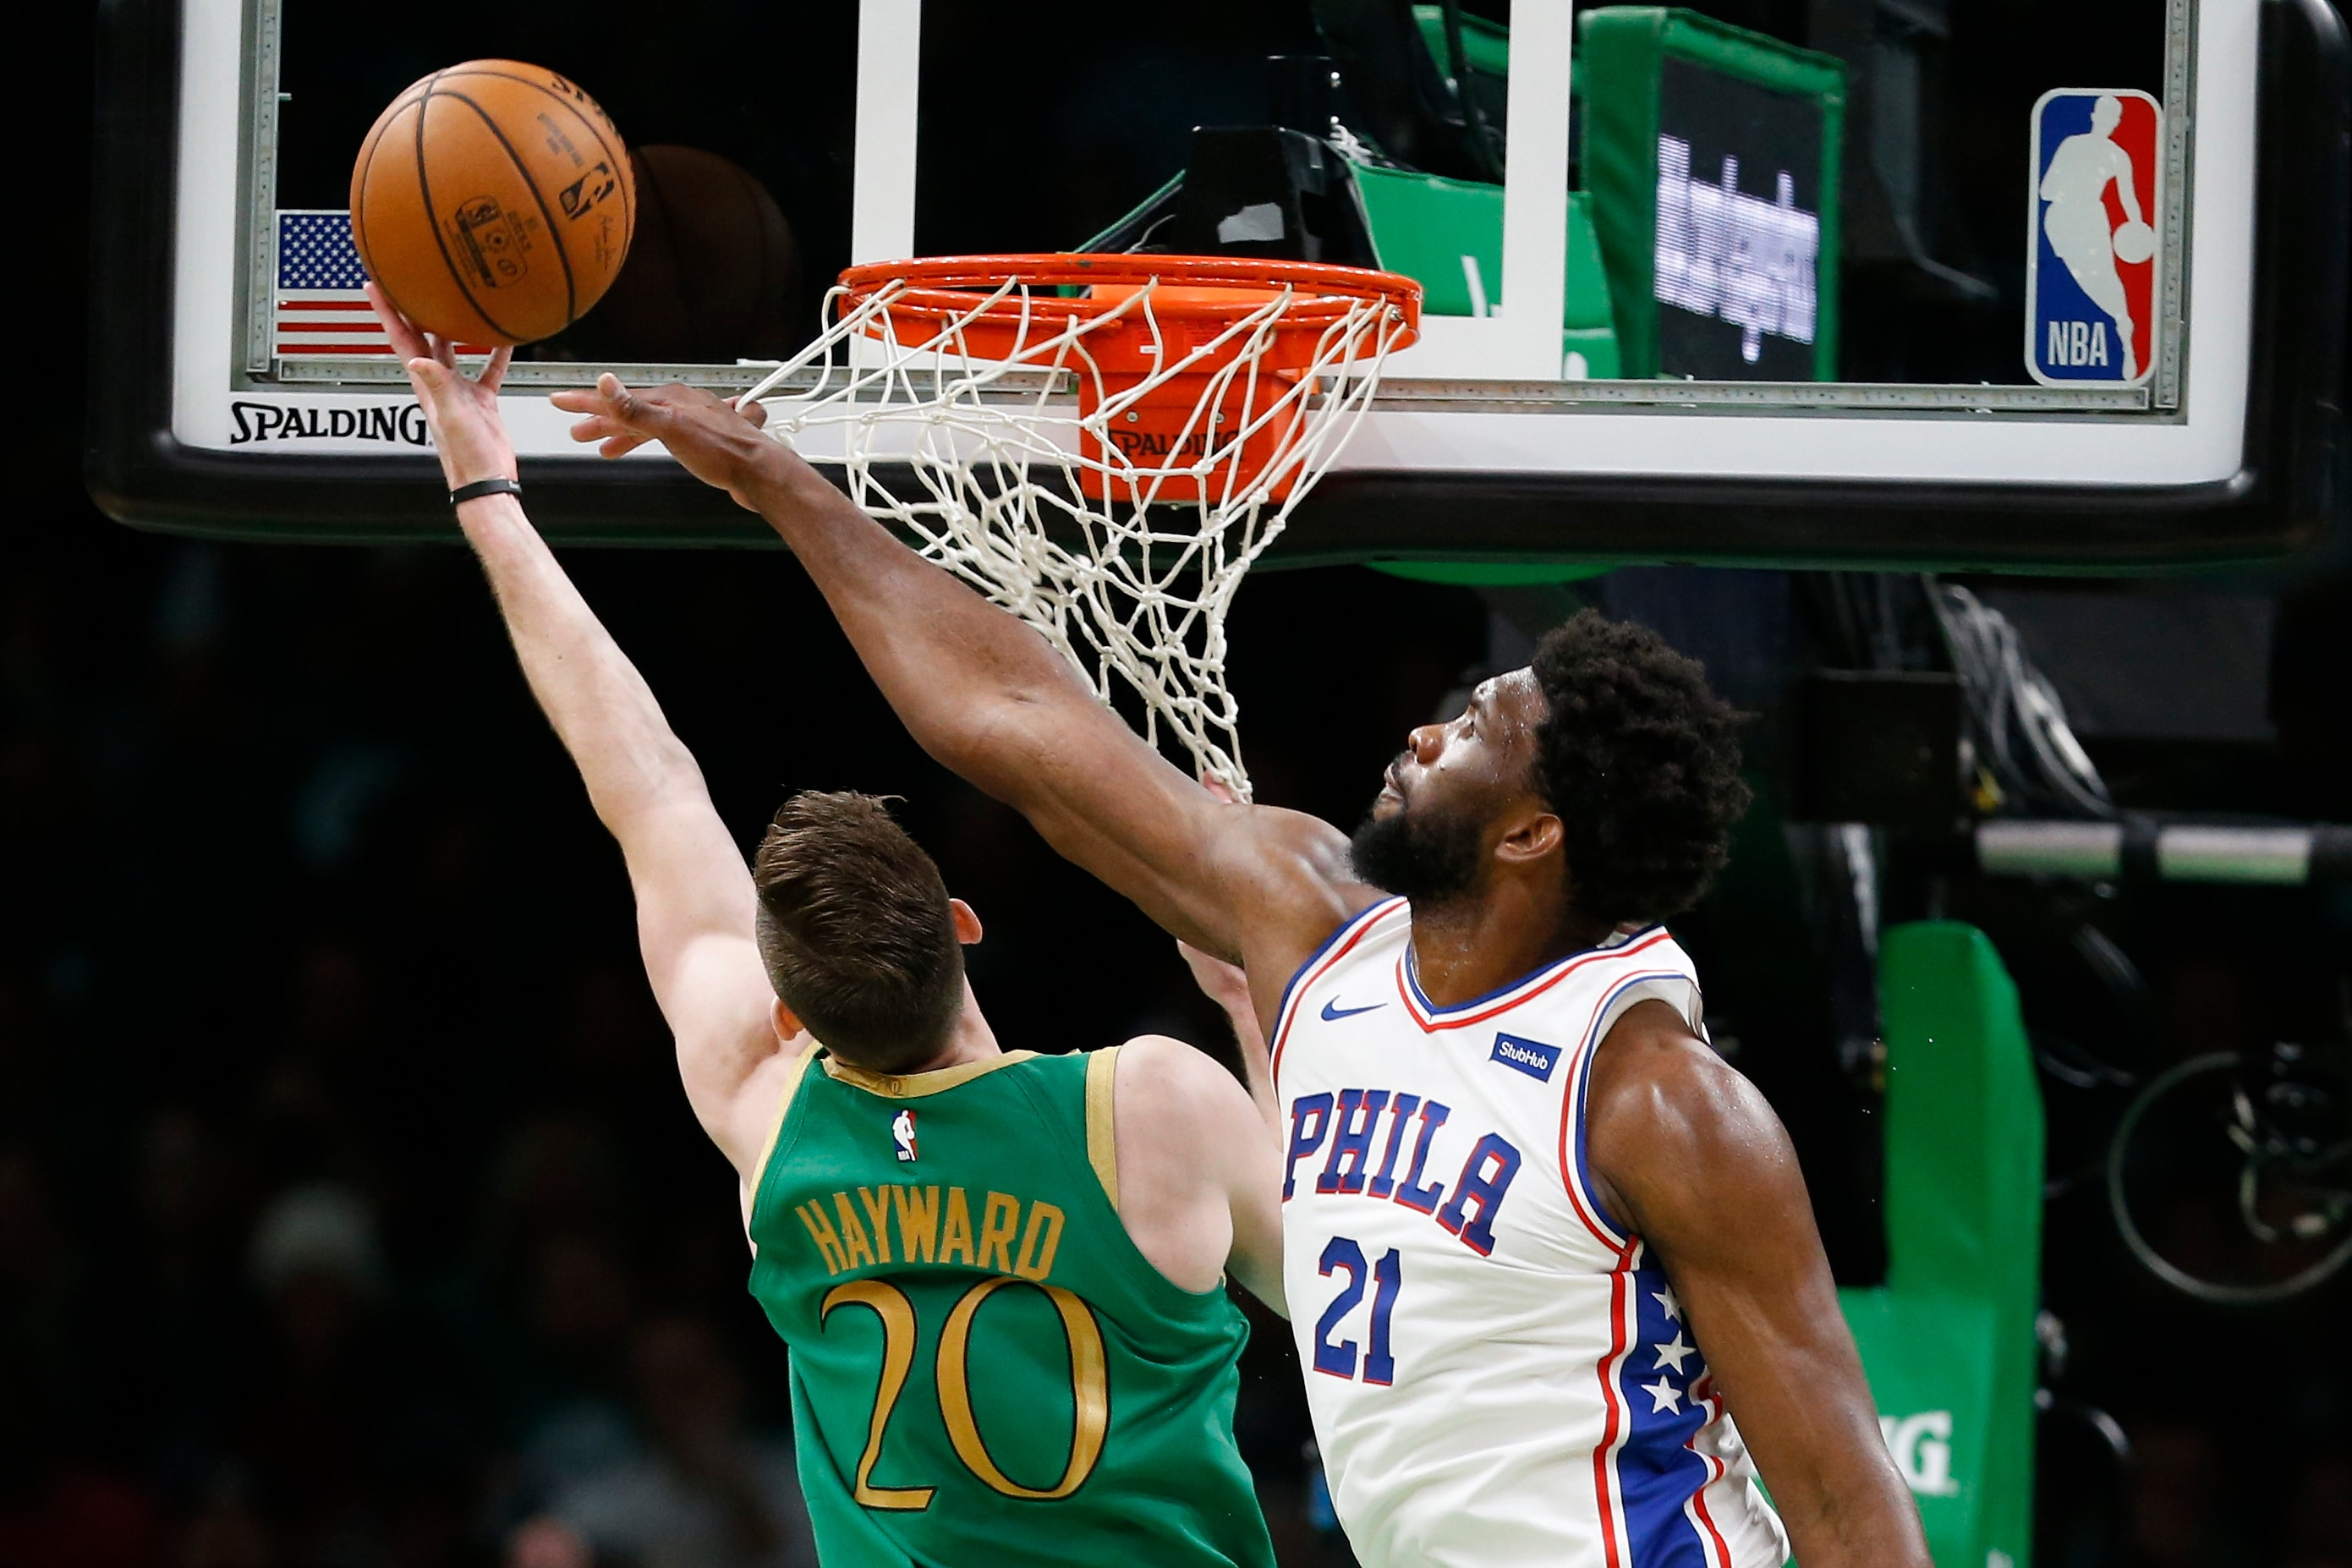 Dec 12, 2019; Boston, MA, USA; Boston Celtics guard Gordon Hayward (20) takes a shot while guarded by Philadelphia 76ers center Joel Embiid (21) during the second half at TD Garden. Mandatory Credit: Greg M. Cooper-USA TODAY Sports